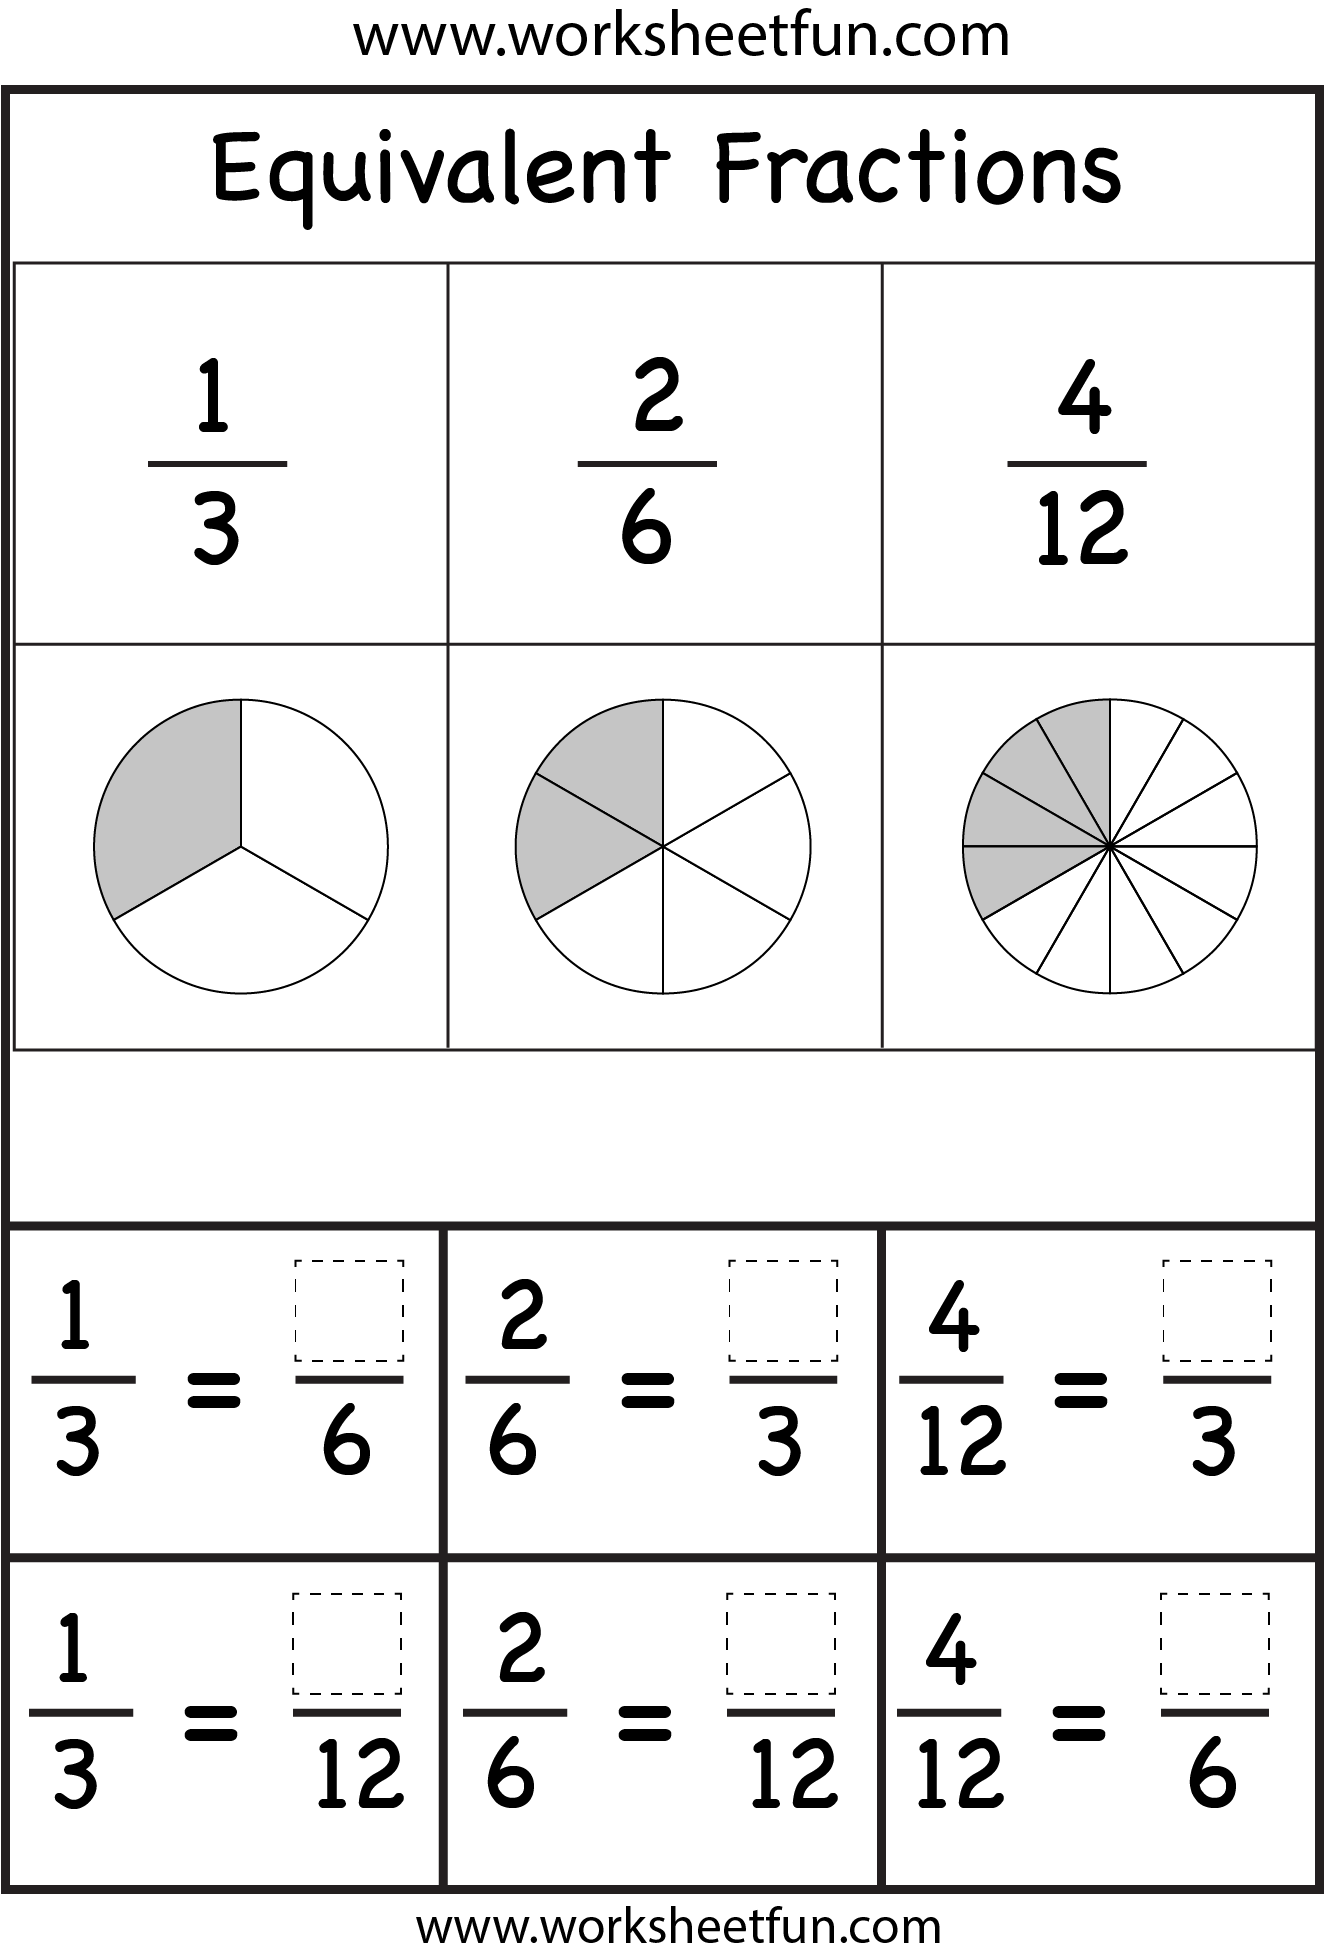 Equivalent Fractions Worksheets With Images